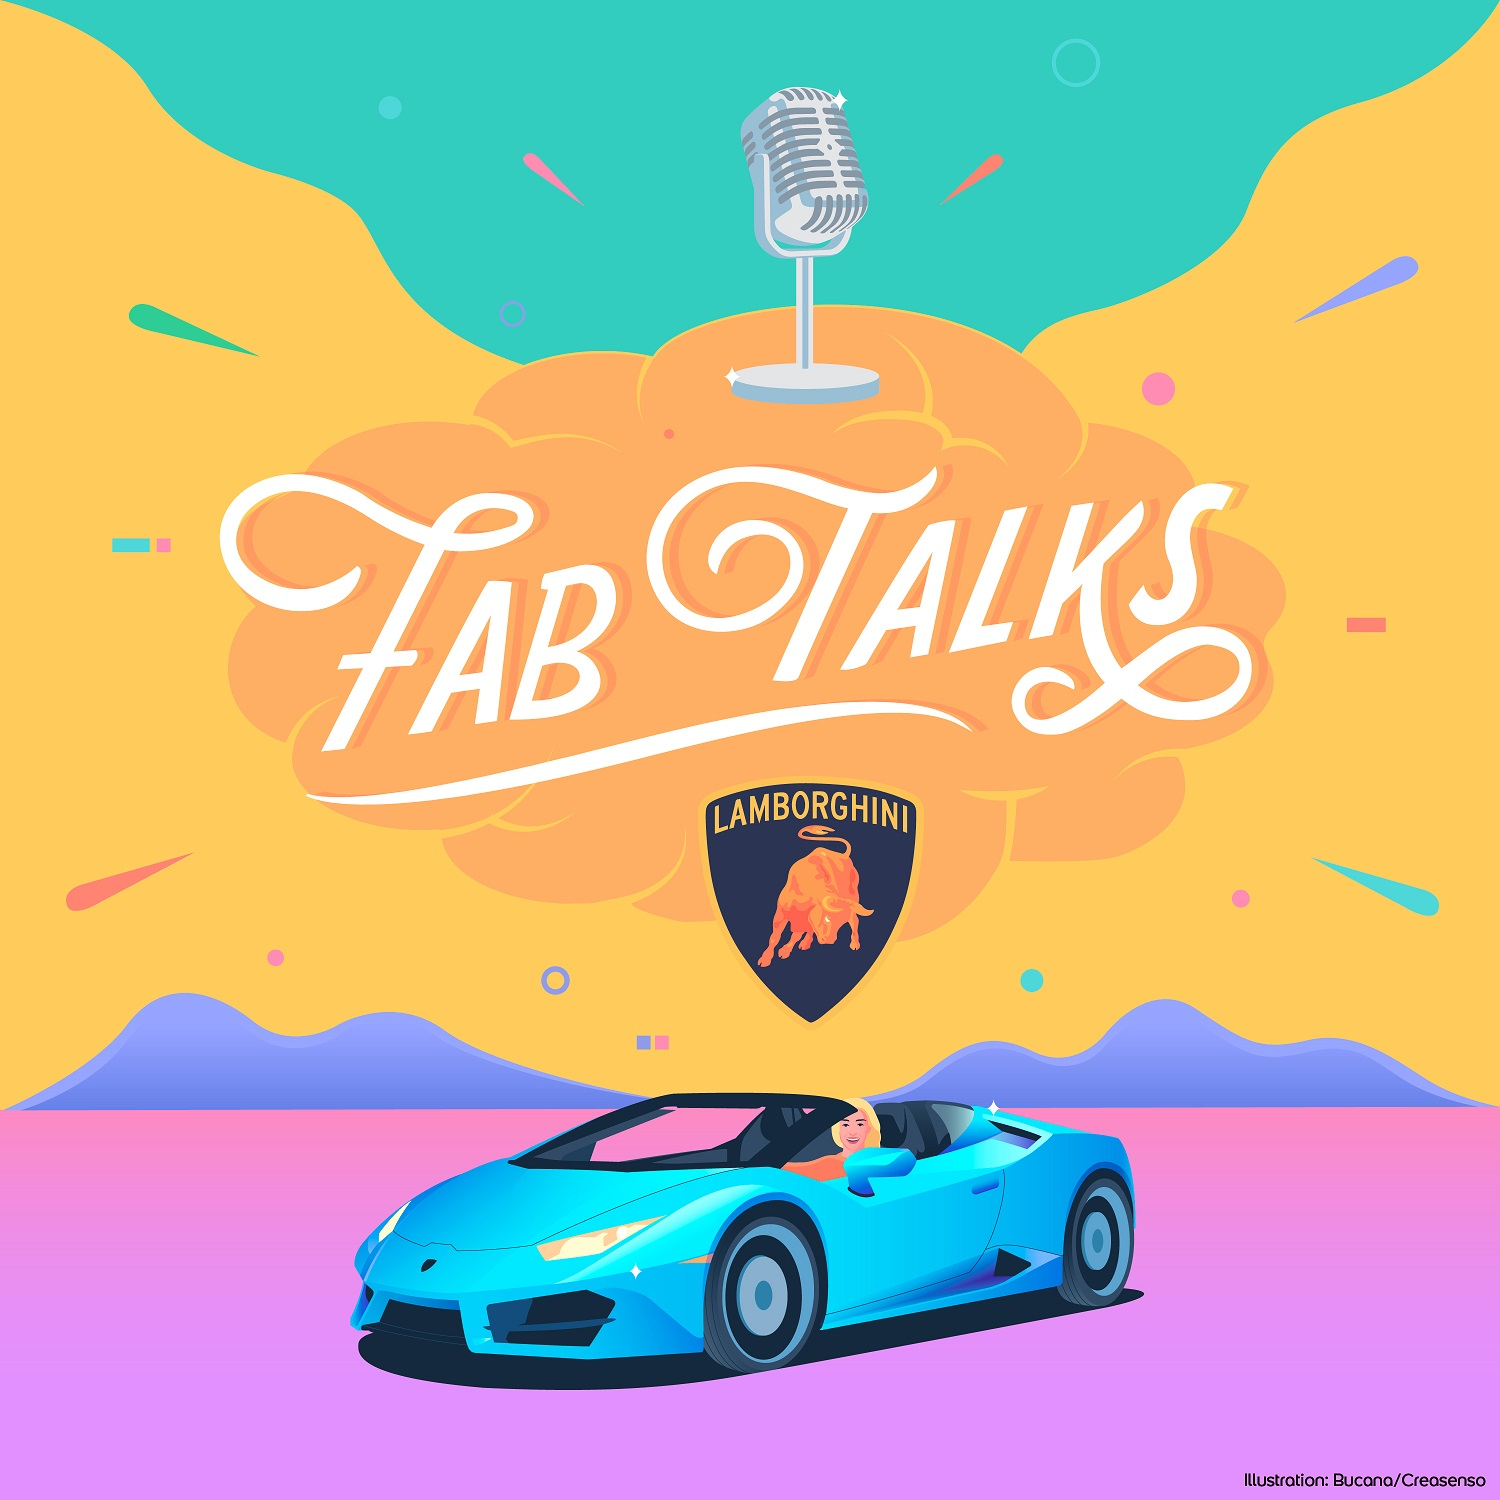 Lamborghini FAB Talks